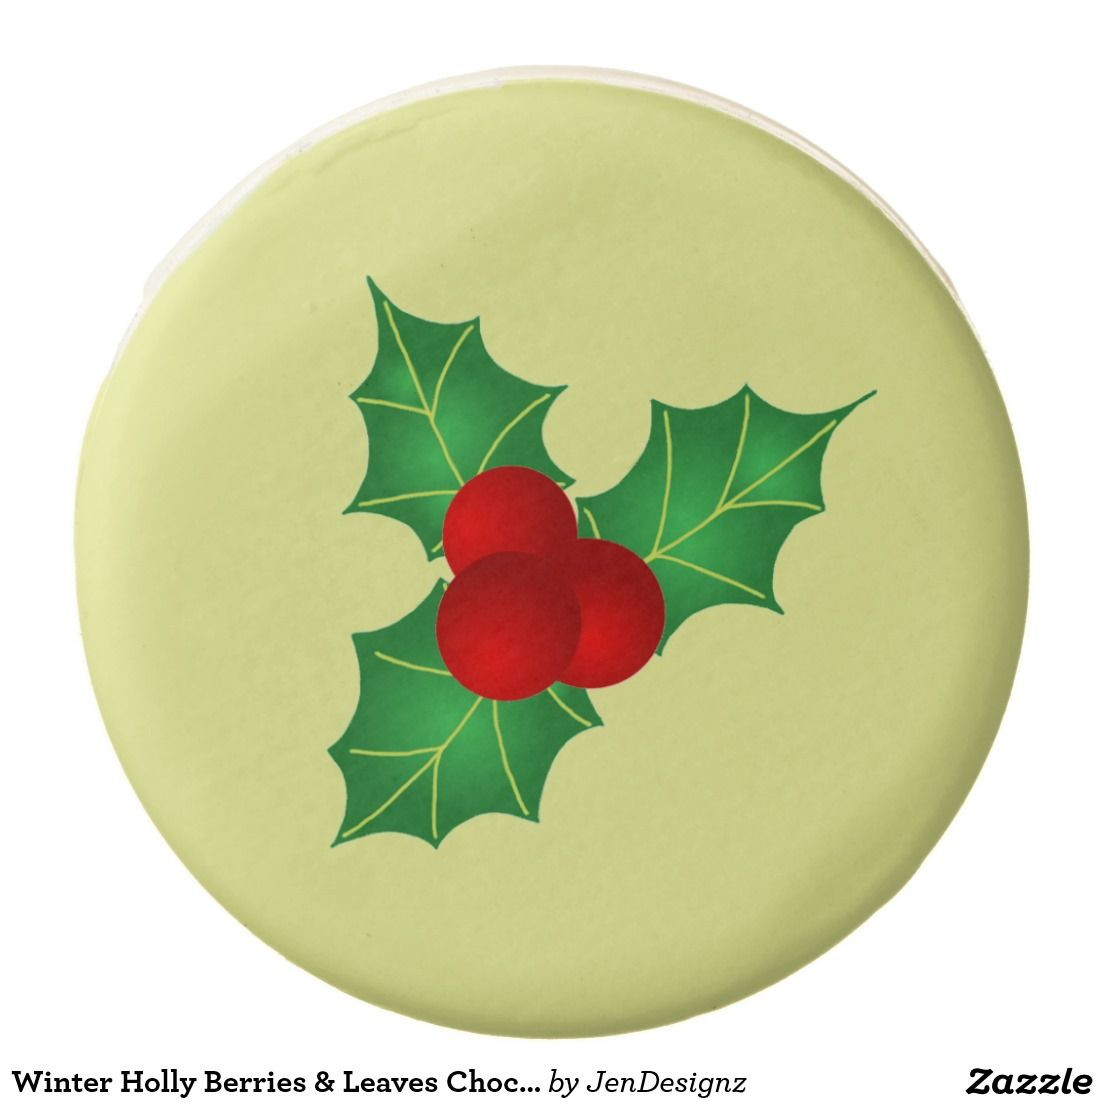 Winter Green & Red Holly Berries & Leaves Aesthetic Yellow Christmas Chocolate Cookie (Customizable Background Color) - Yummy...